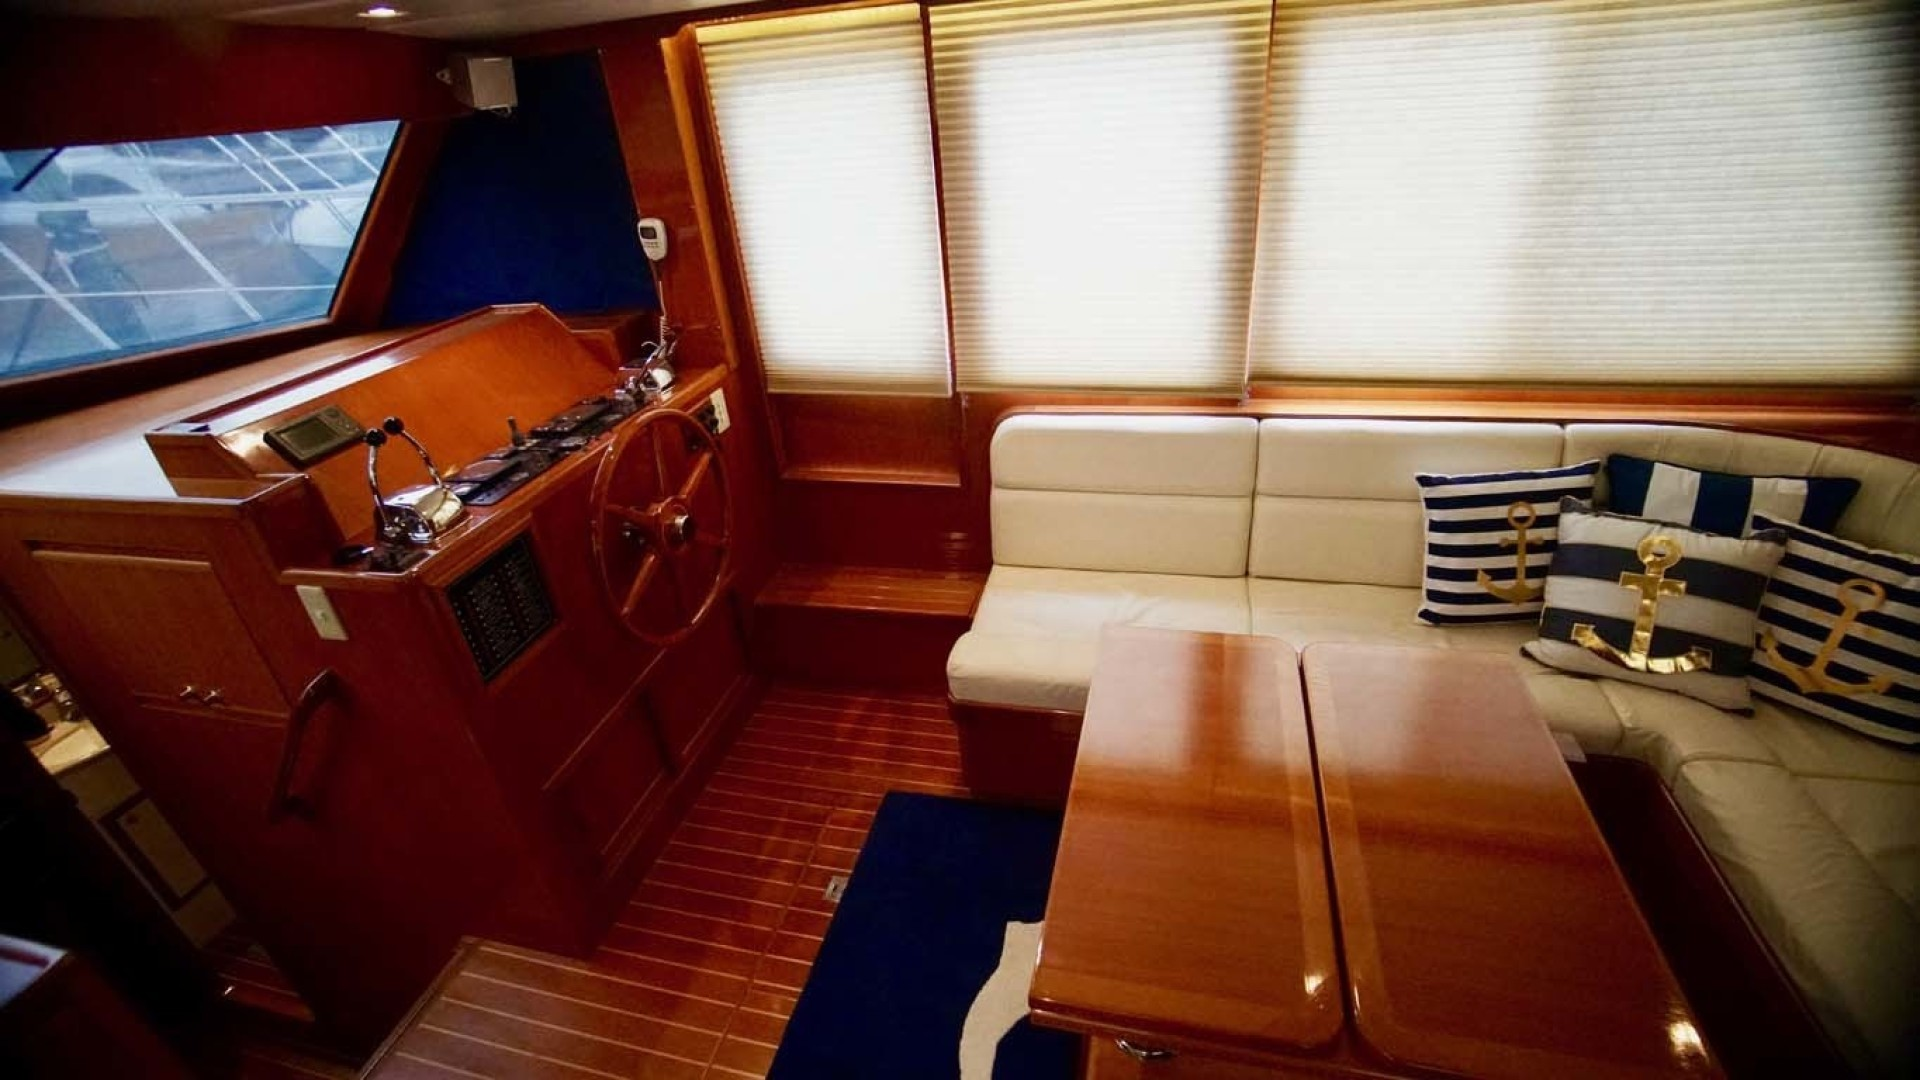 Novatec-48 Fast Trawler 2003-SINE DIE II Destin-Florida-United States-Salon Seating And Lower Helm-1360614 | Thumbnail